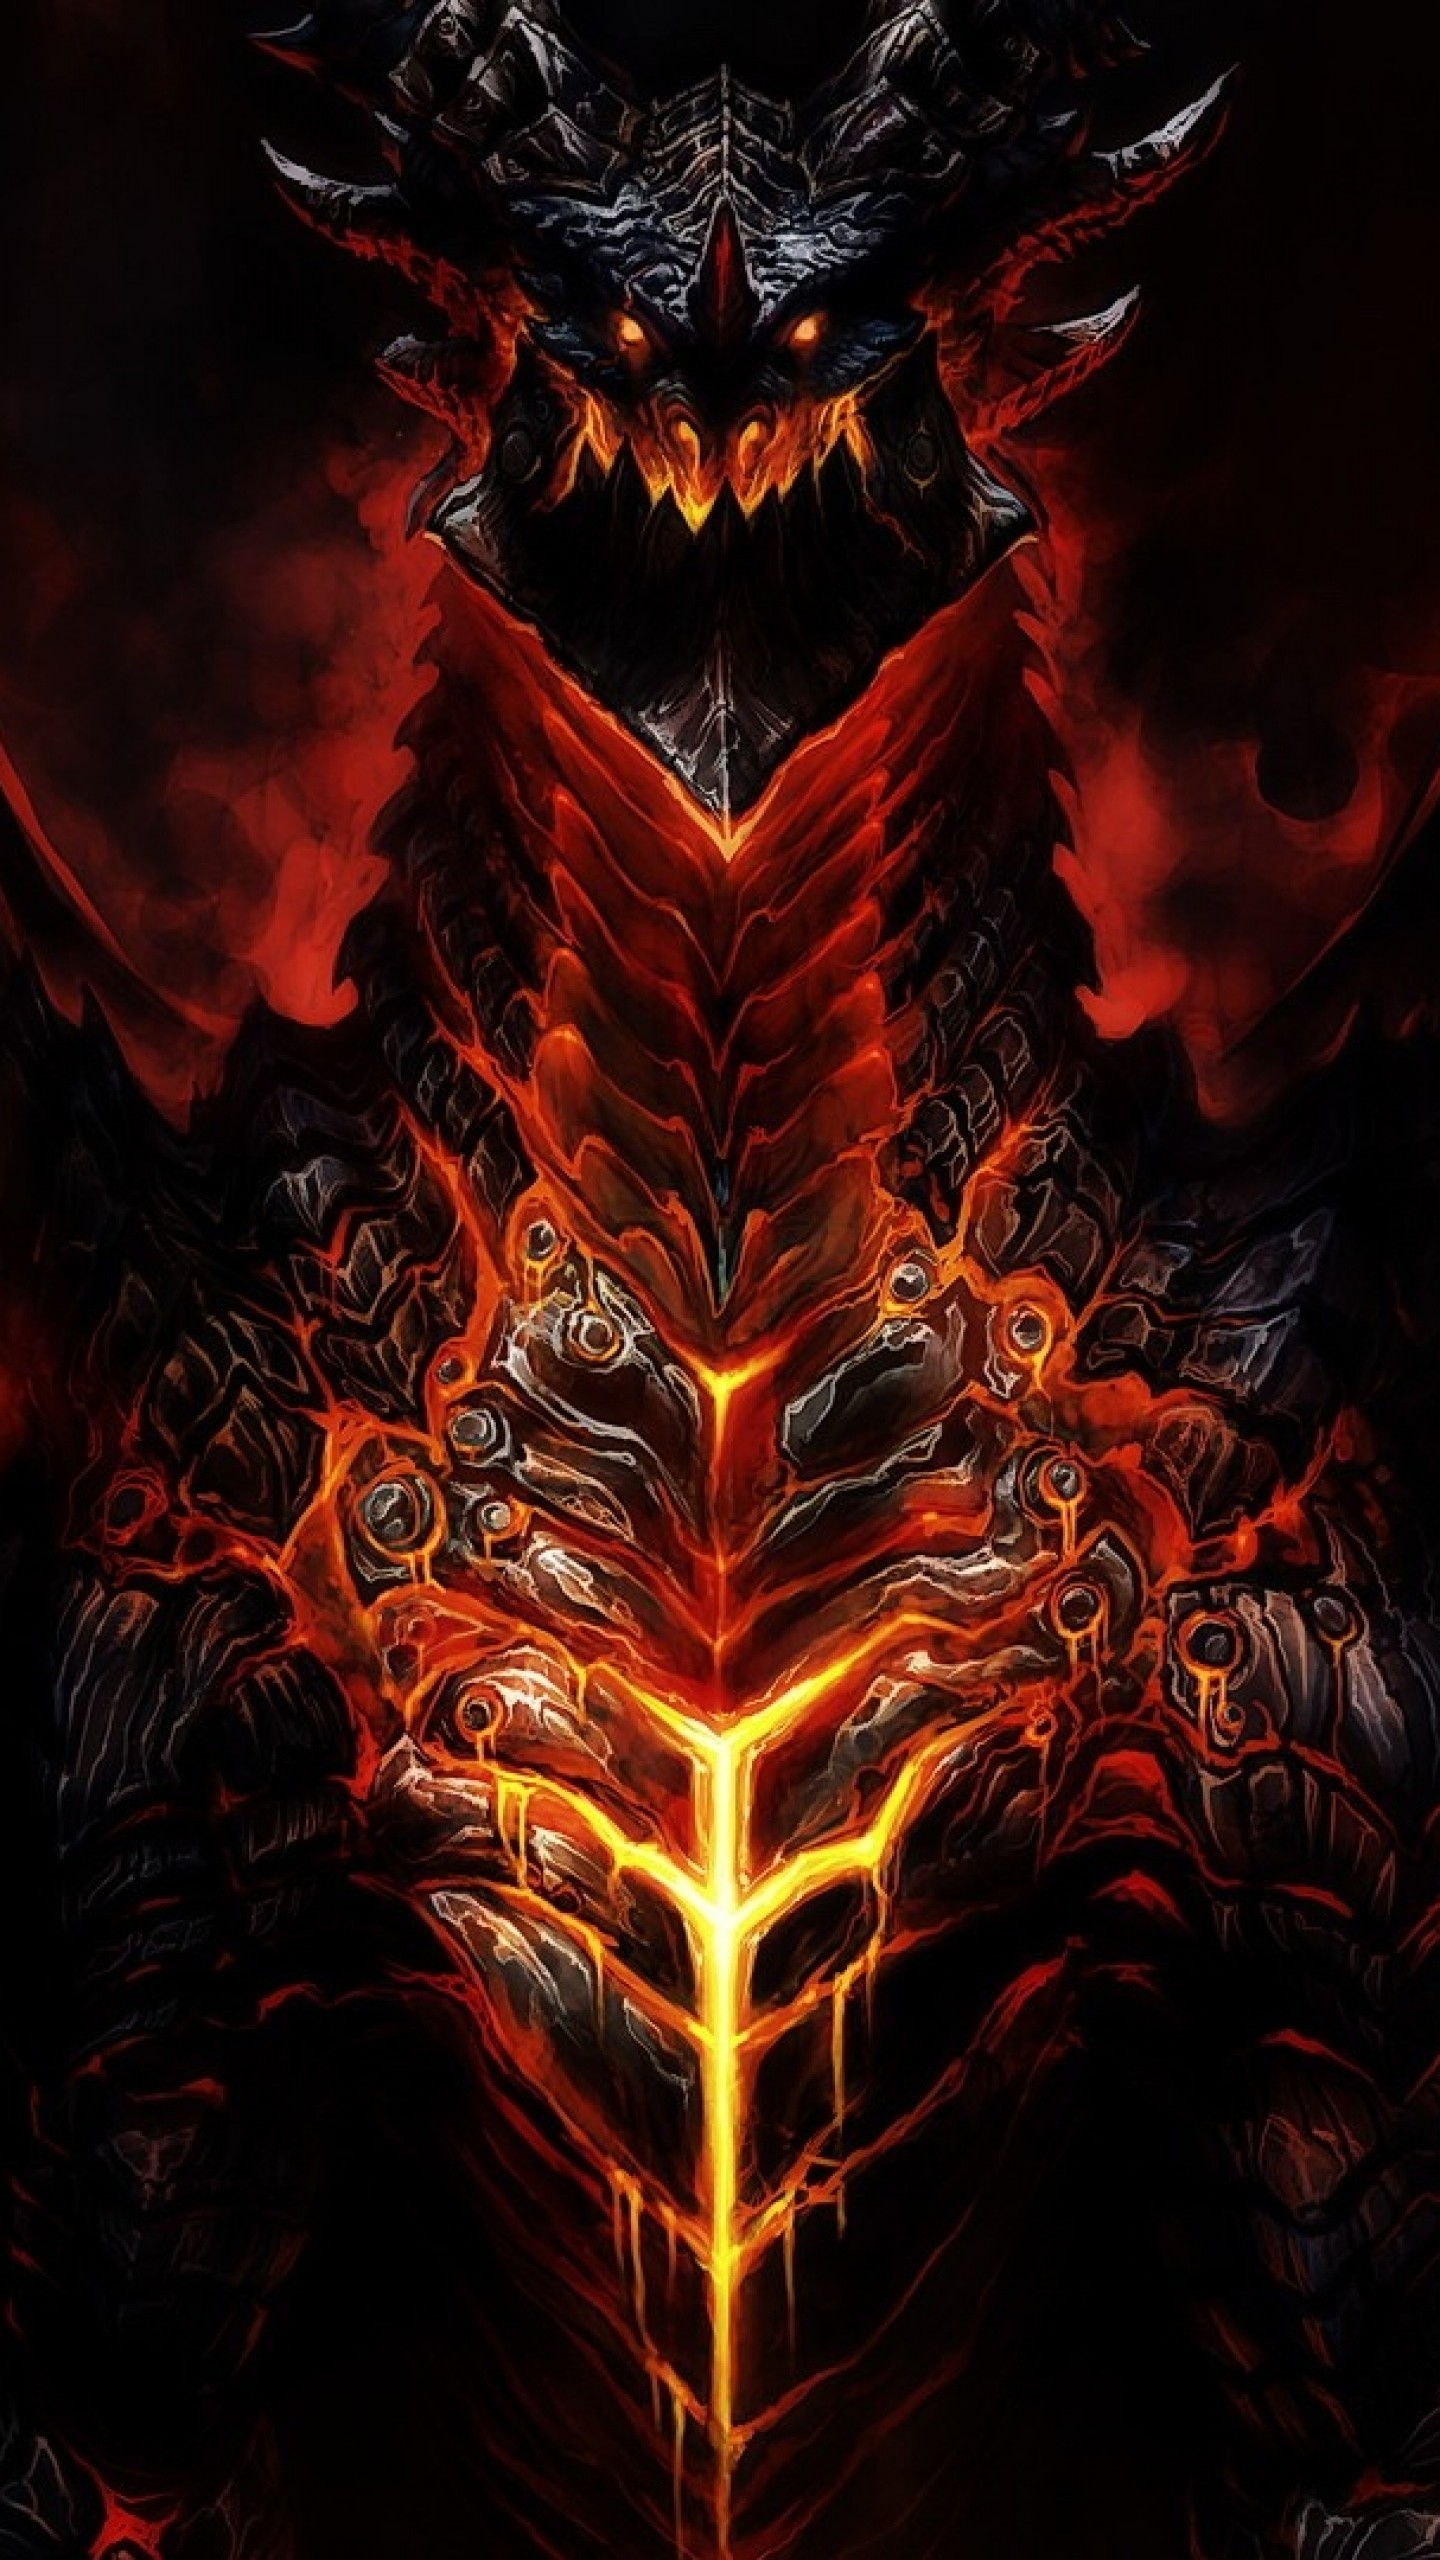 Warcraft Iphone Wallpaper Posted By John Anderson